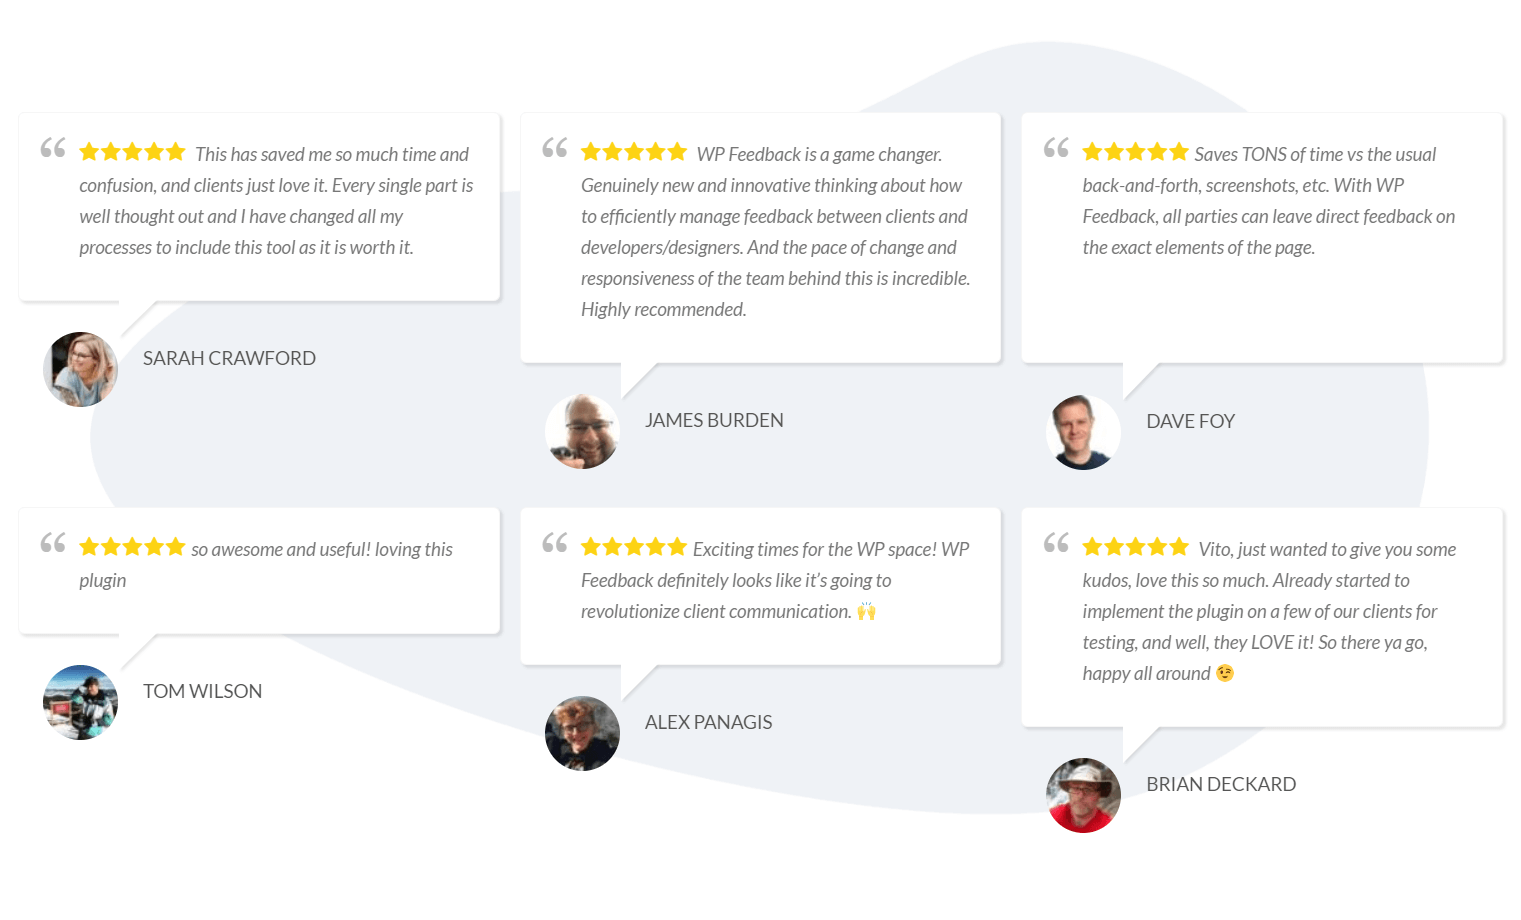 reviews-wpfeedback_0003_screenshot-wpfeedback.co-2019.07.14-16_23_39